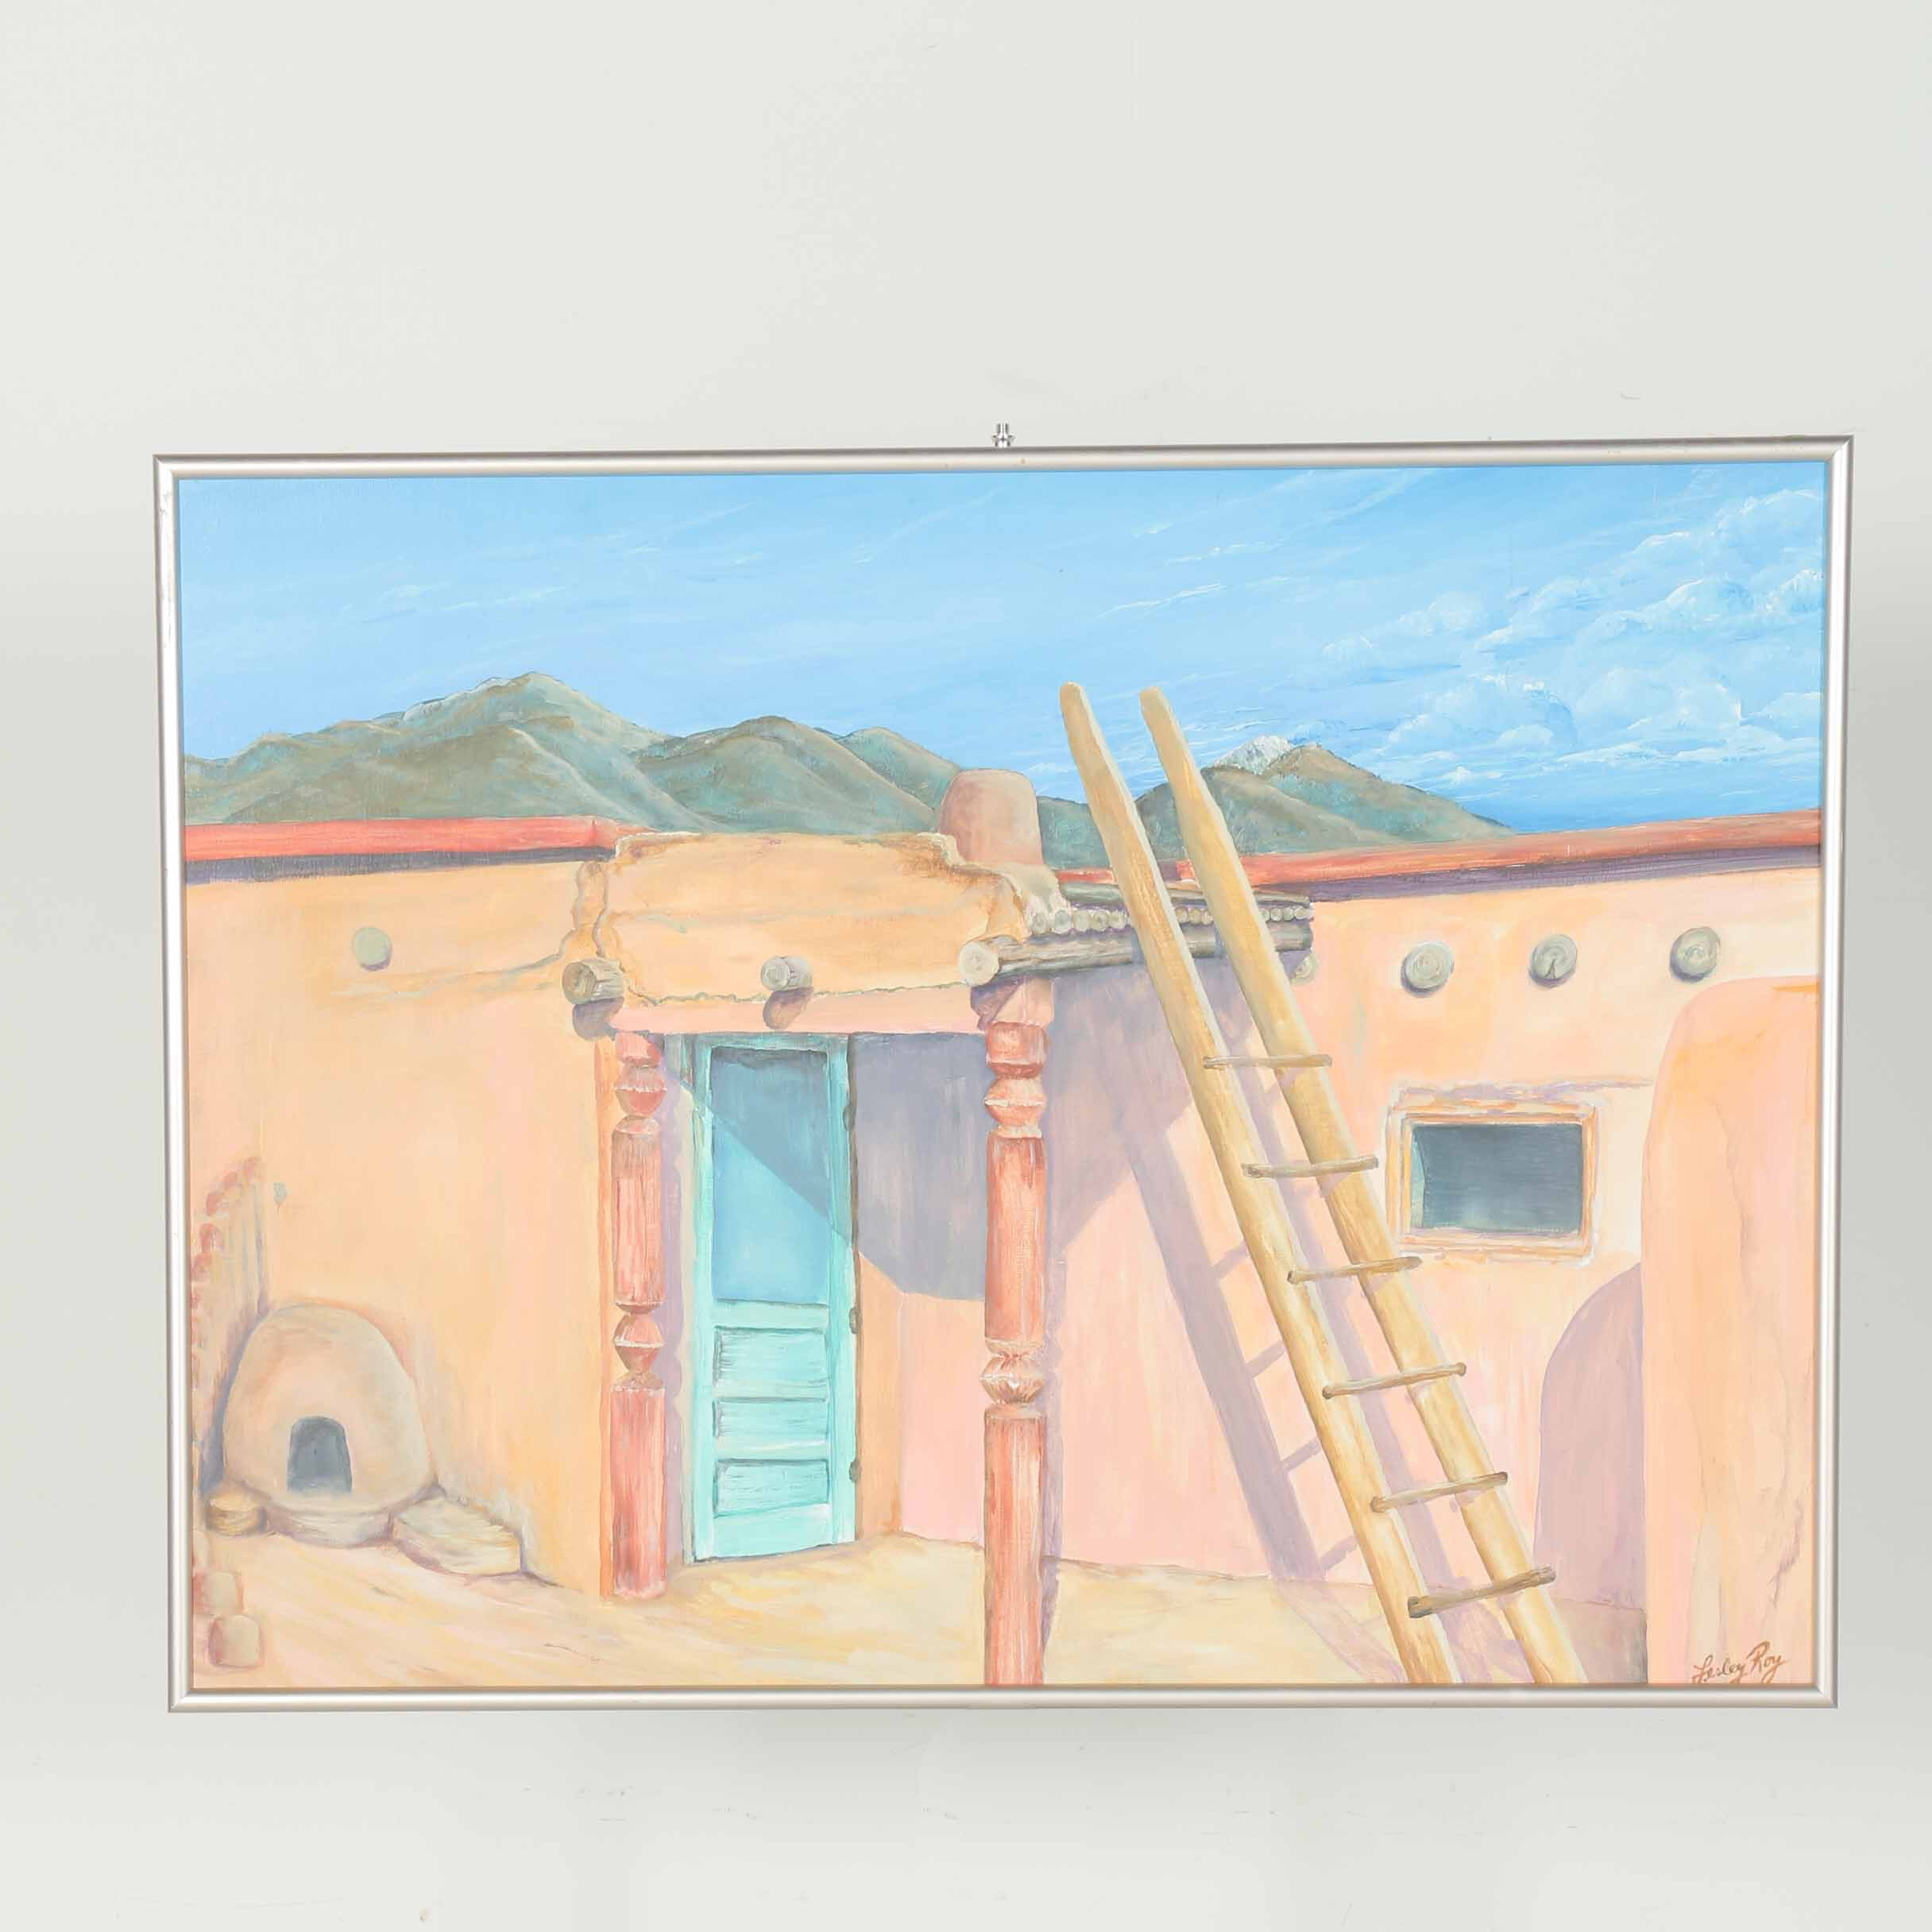 Lesley Roy Oil on Canvas of an Adobe House